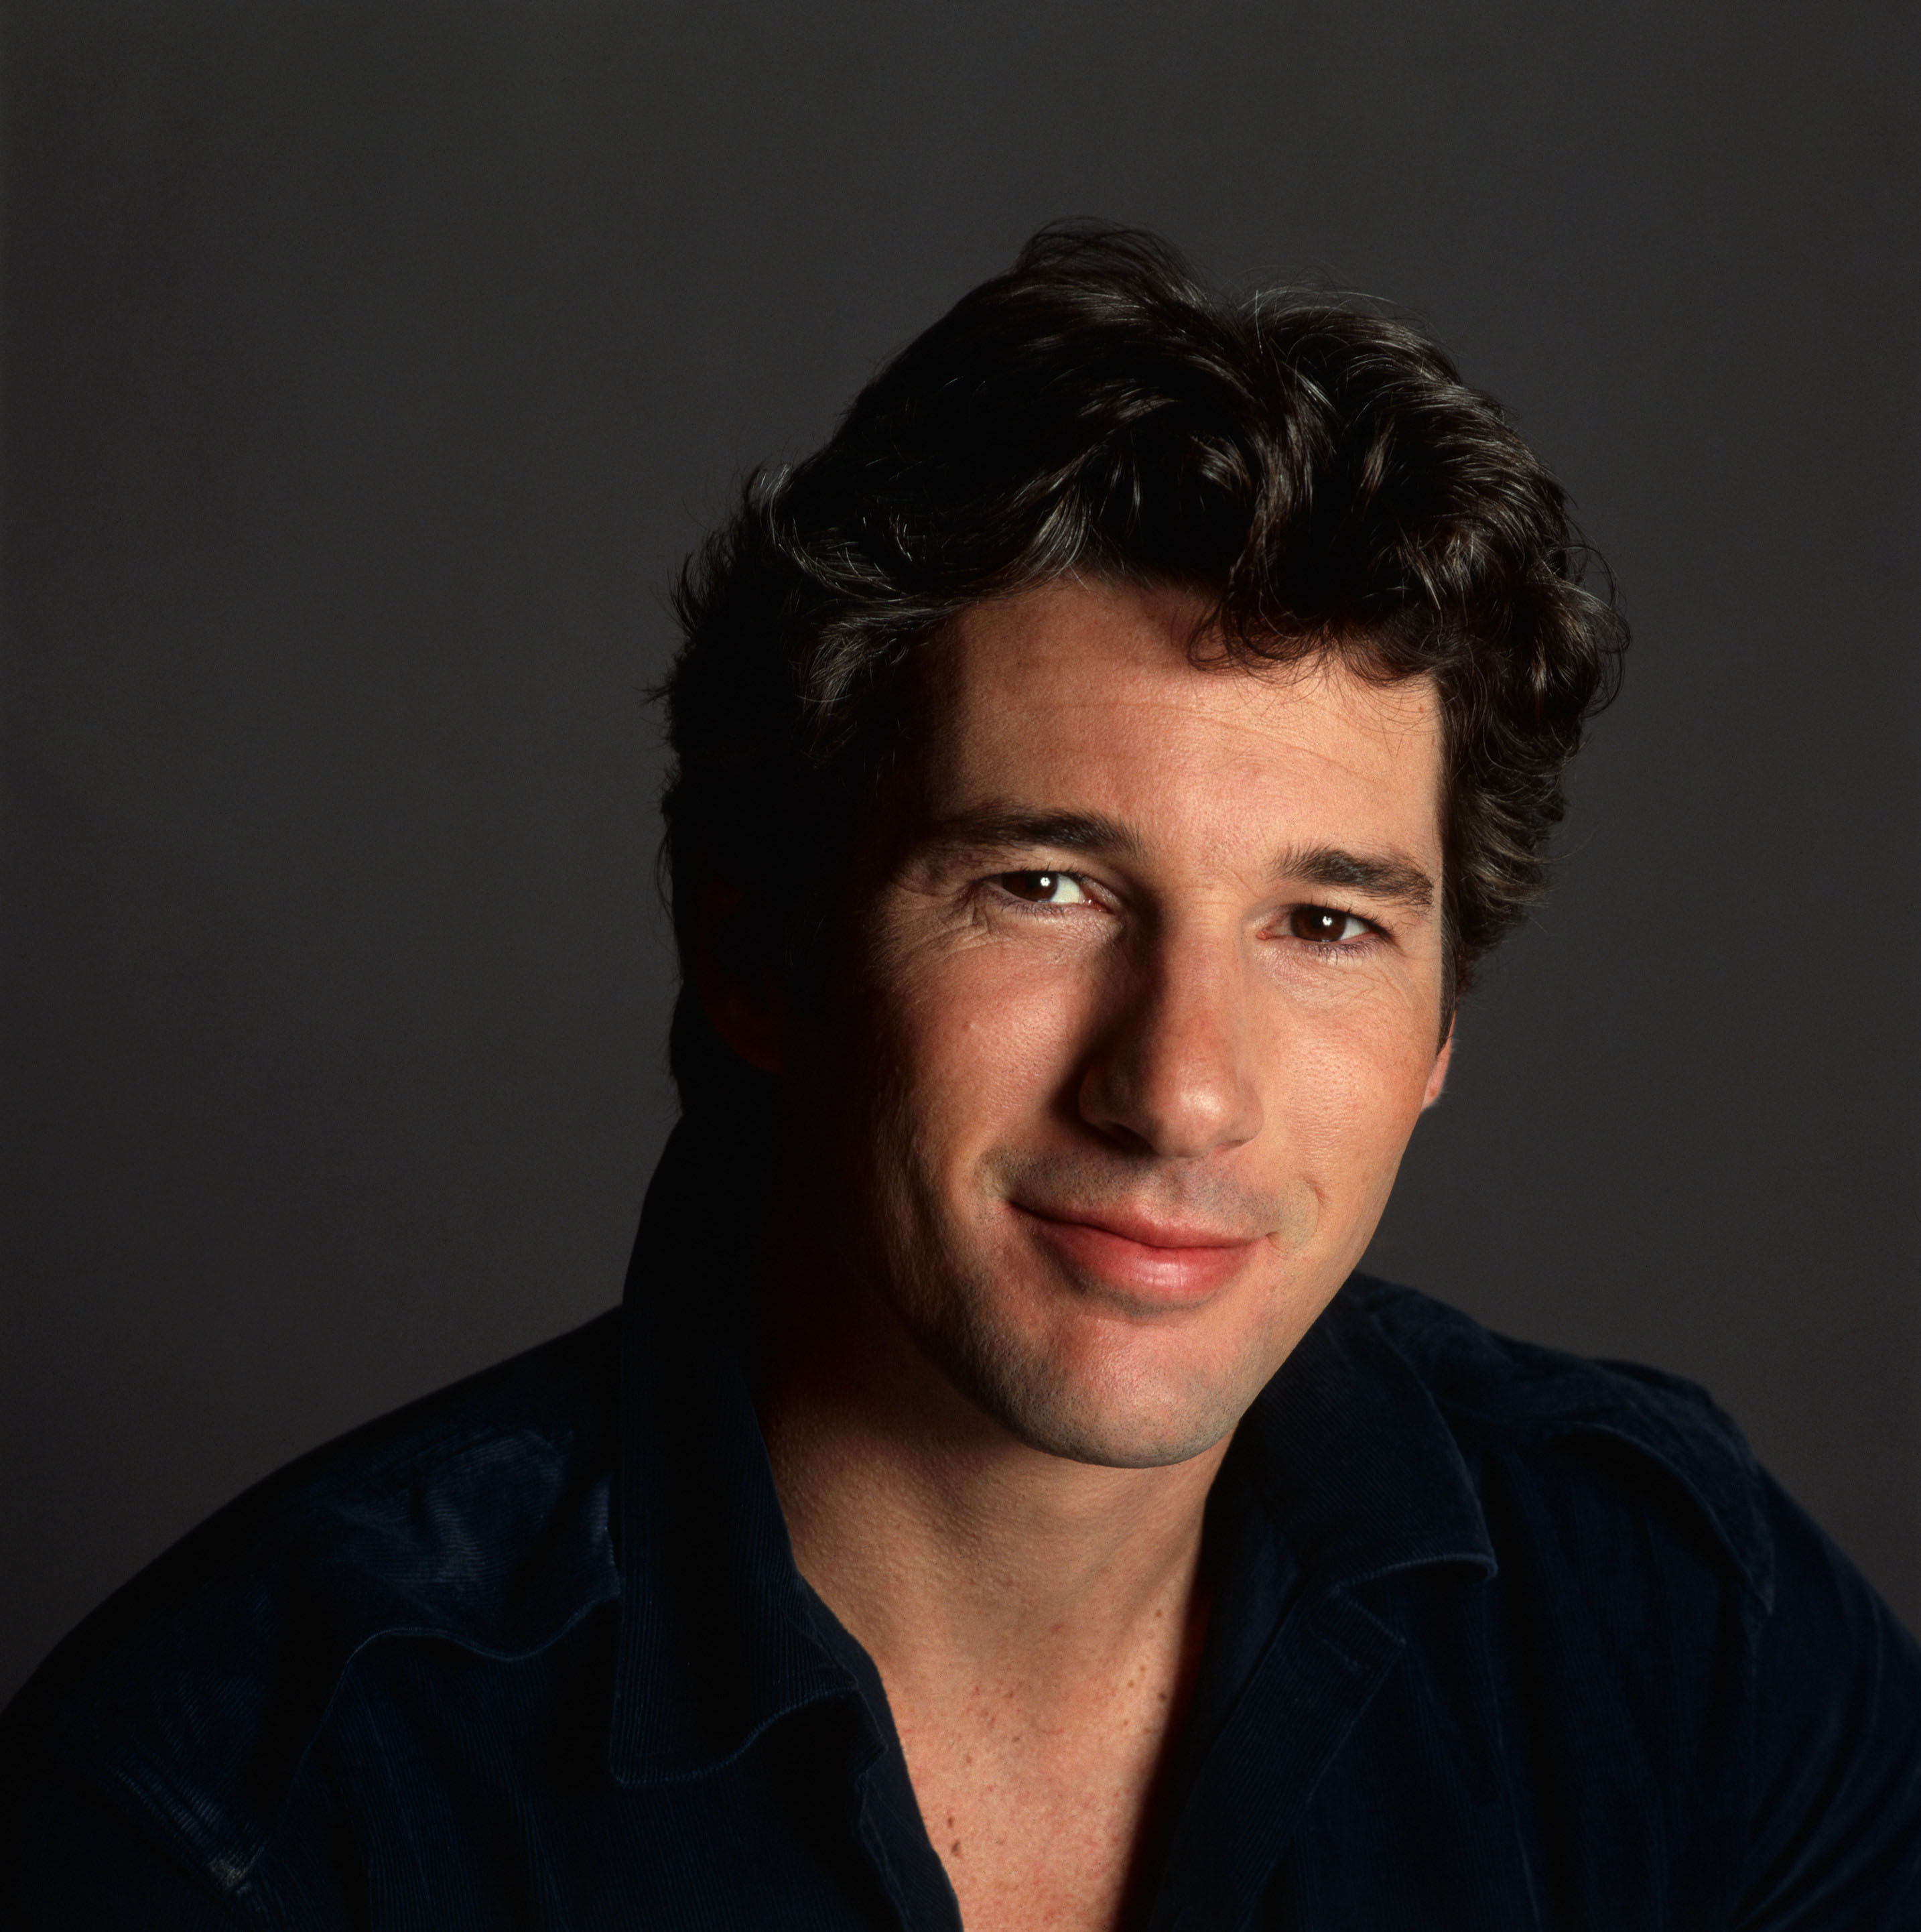 Richard Gere photo, pics, wallpaper - photo #